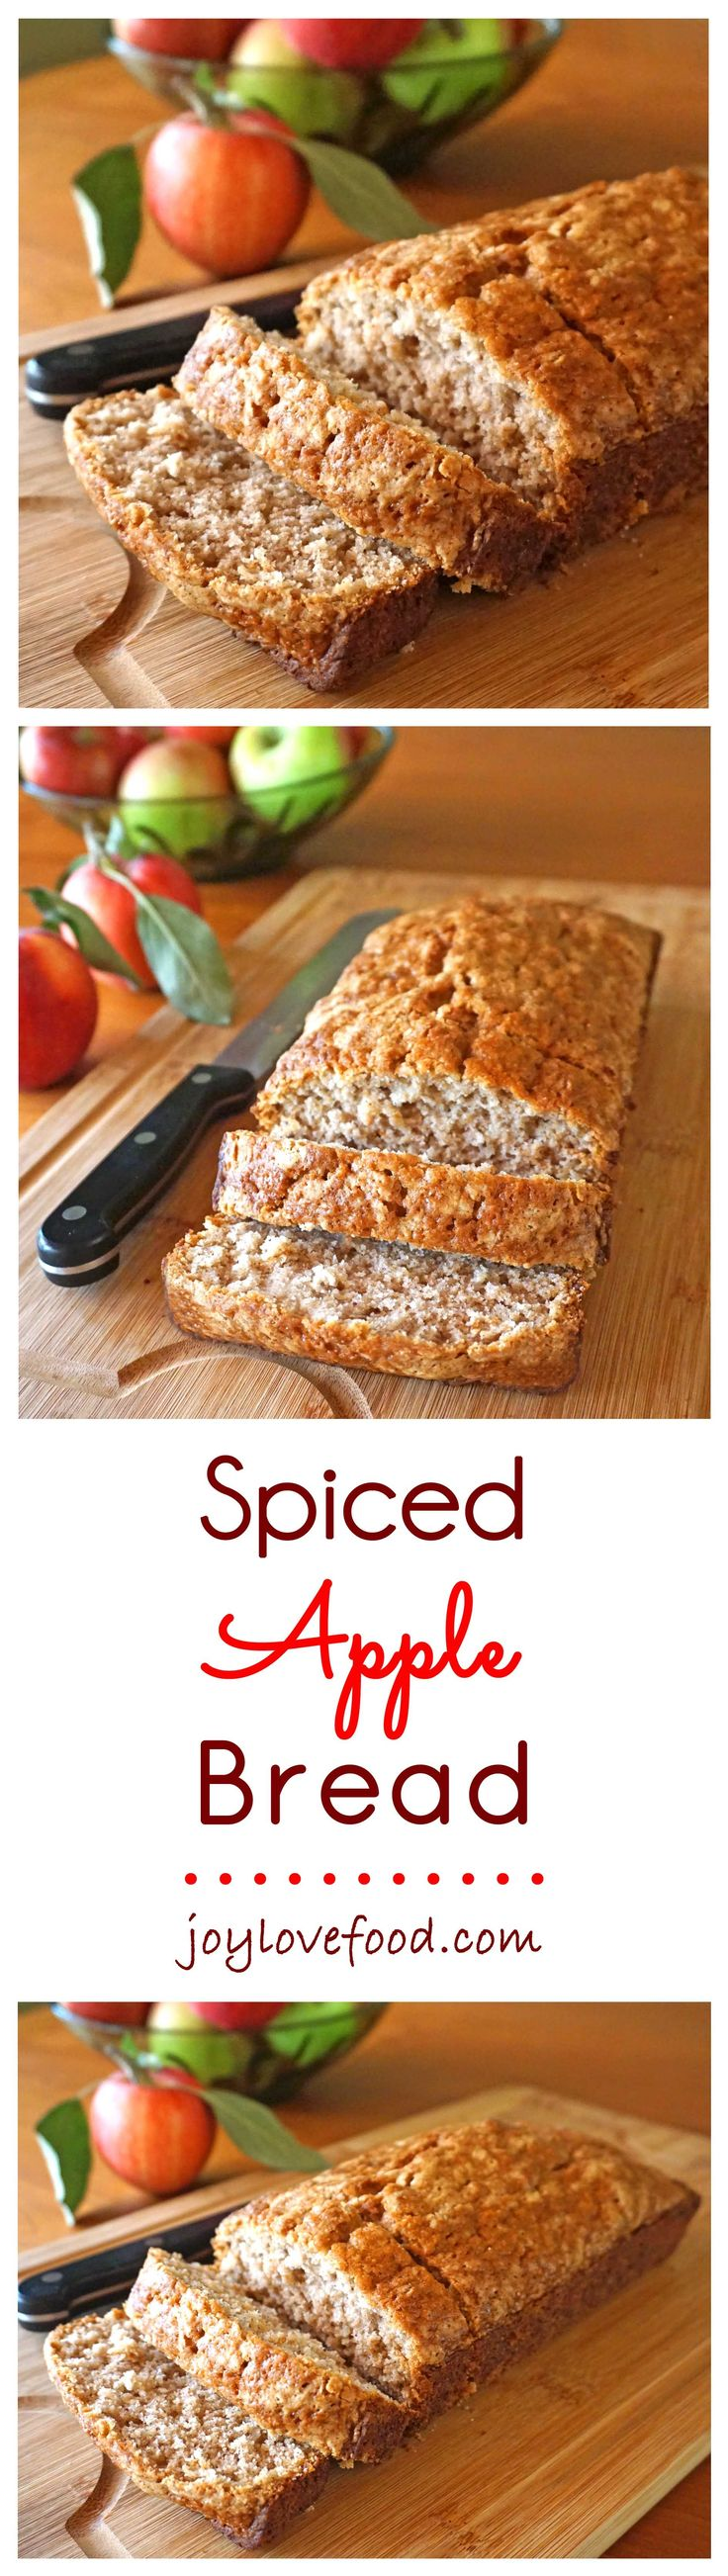 This delicious, subtly spiced apple bread is the perfect autumn treat, enjoy a slice or two with a cup of coffee in the morning or anytime you're craving a little something sweet.